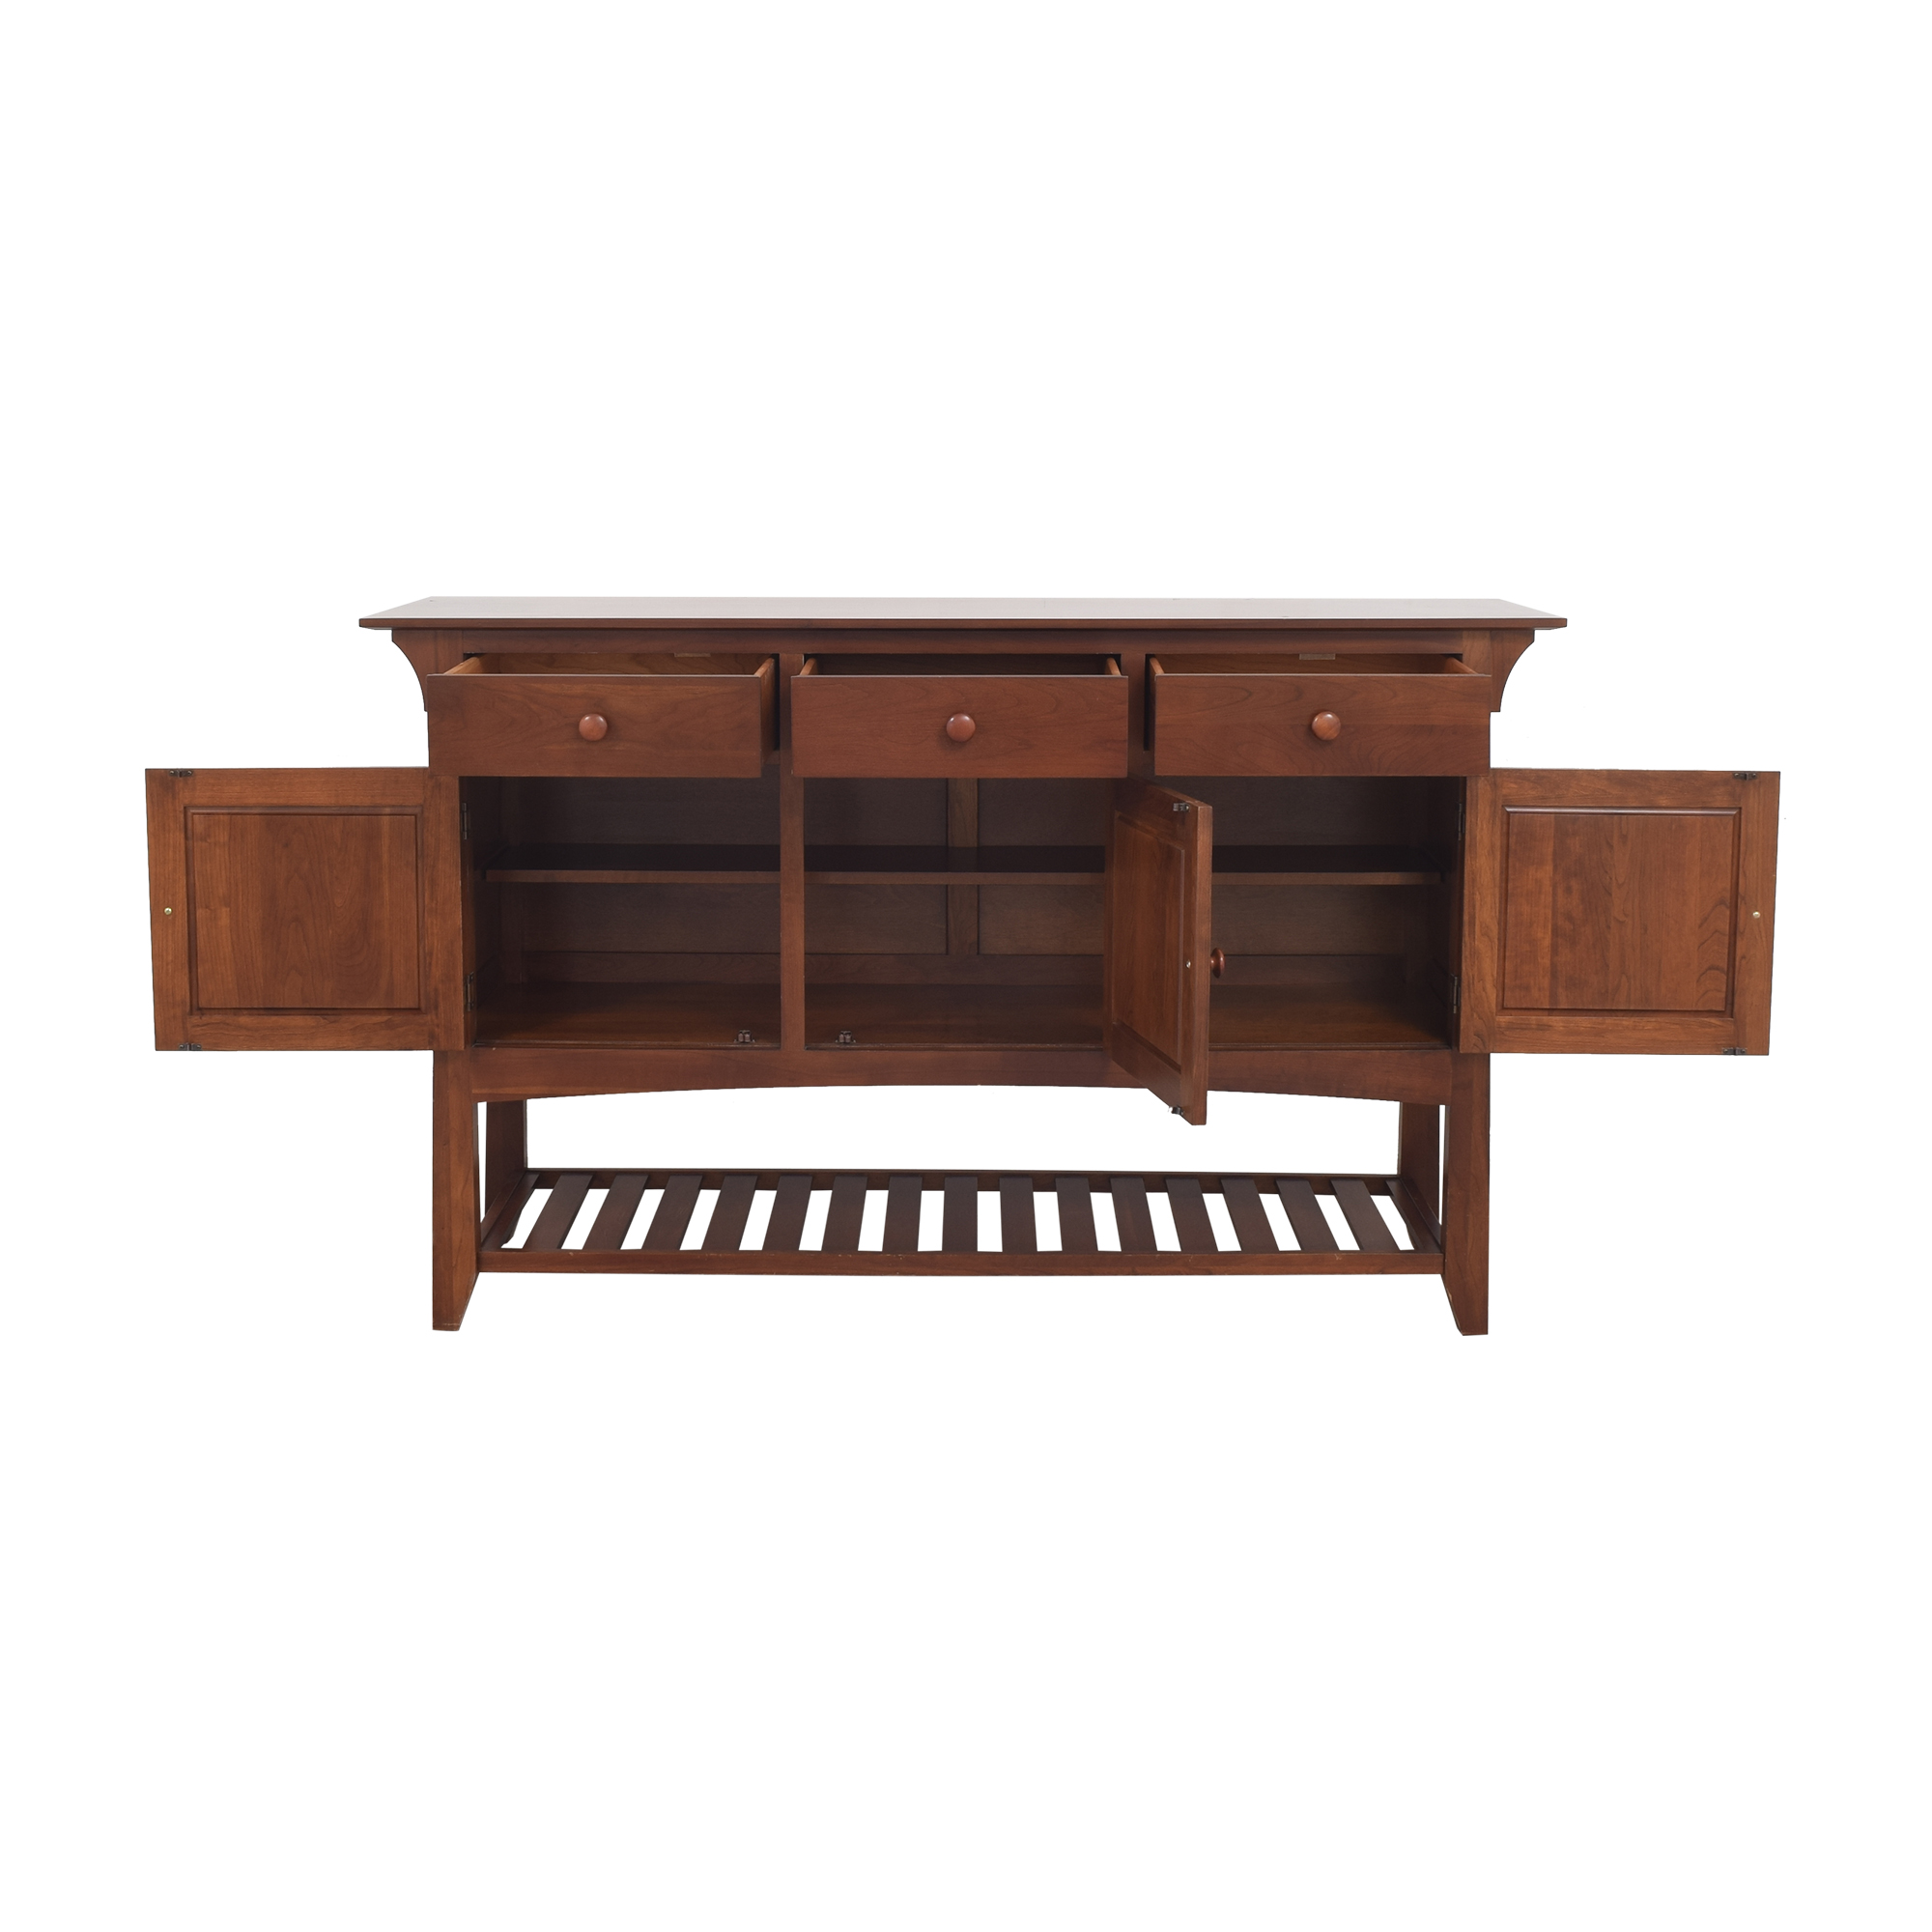 Ethan Allen Ethan Allen American Impressions Mission Server Buffet nyc